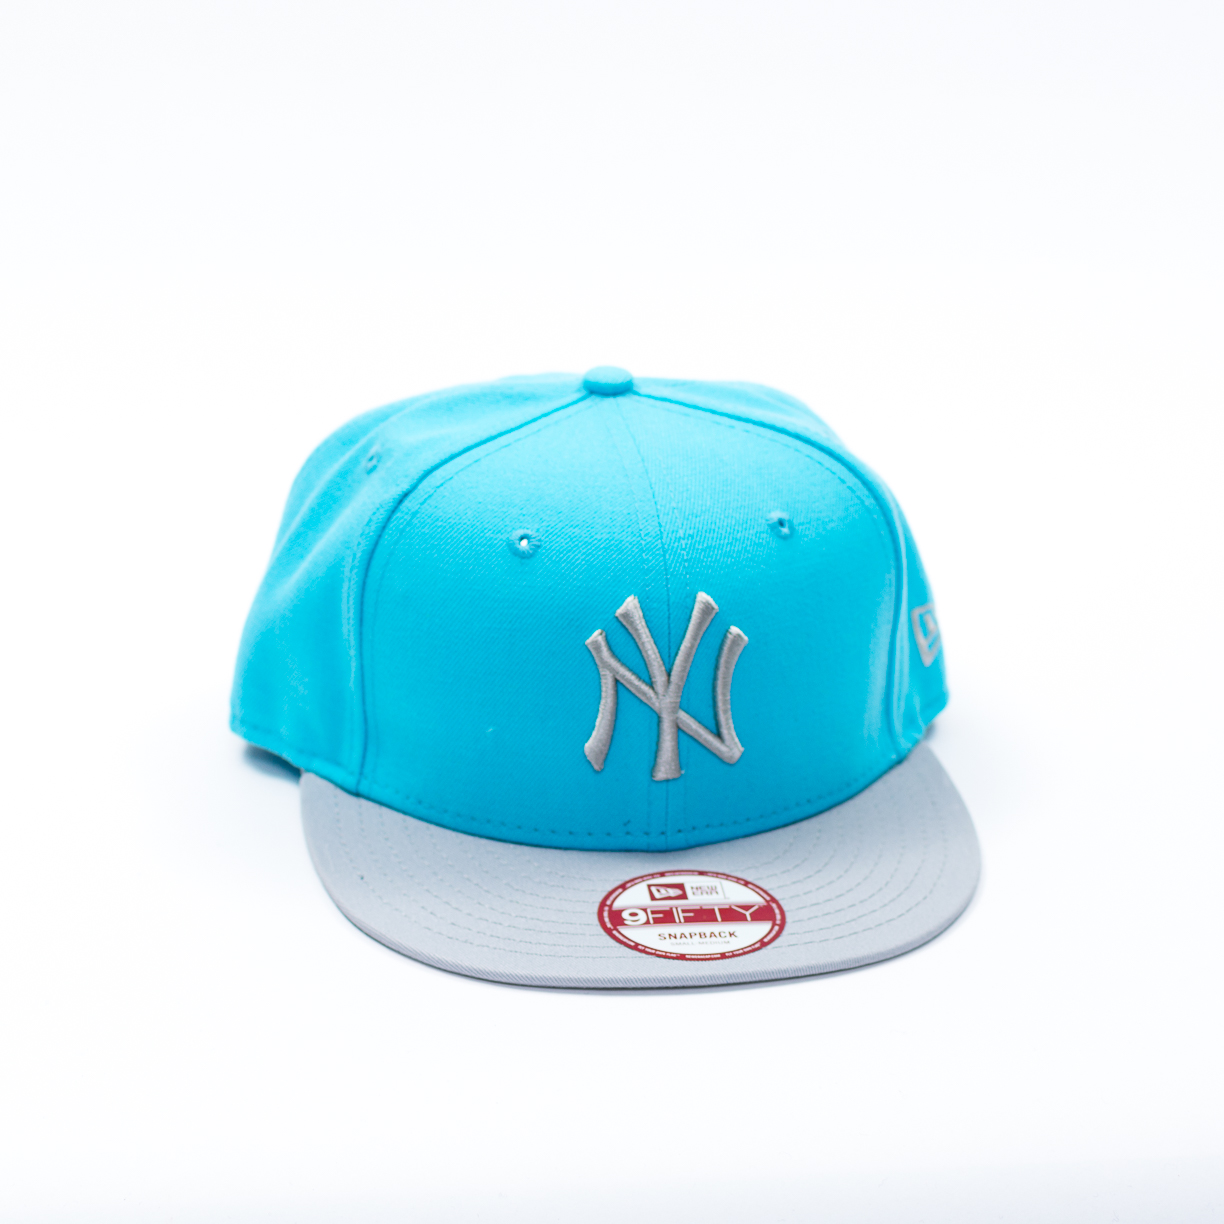 CAPPELLO NEW ERA MULTICOLOR AZZURRO VISIERA NY